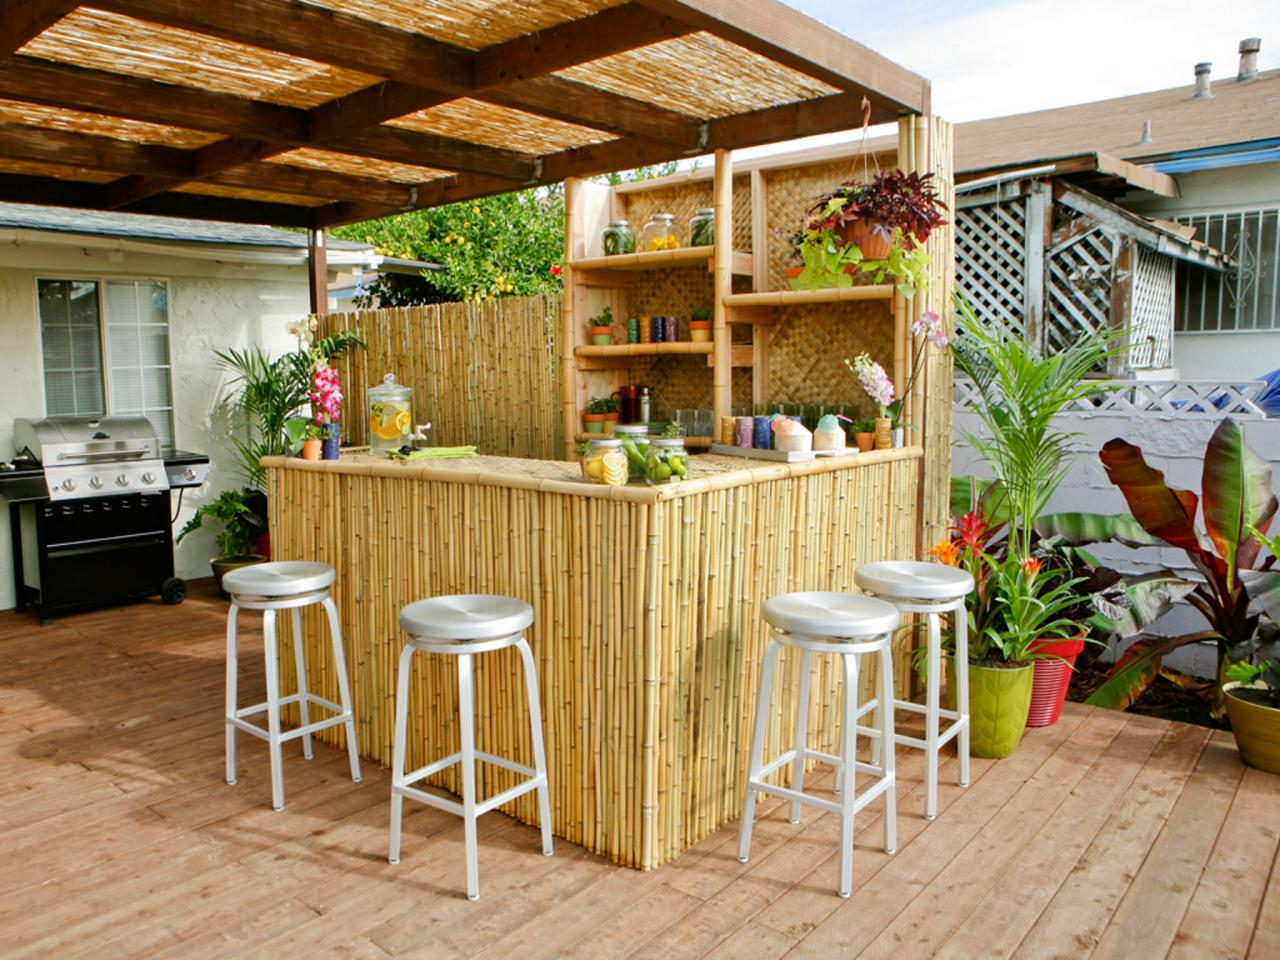 Outdoor Bar Ideas DIY Or Buy An